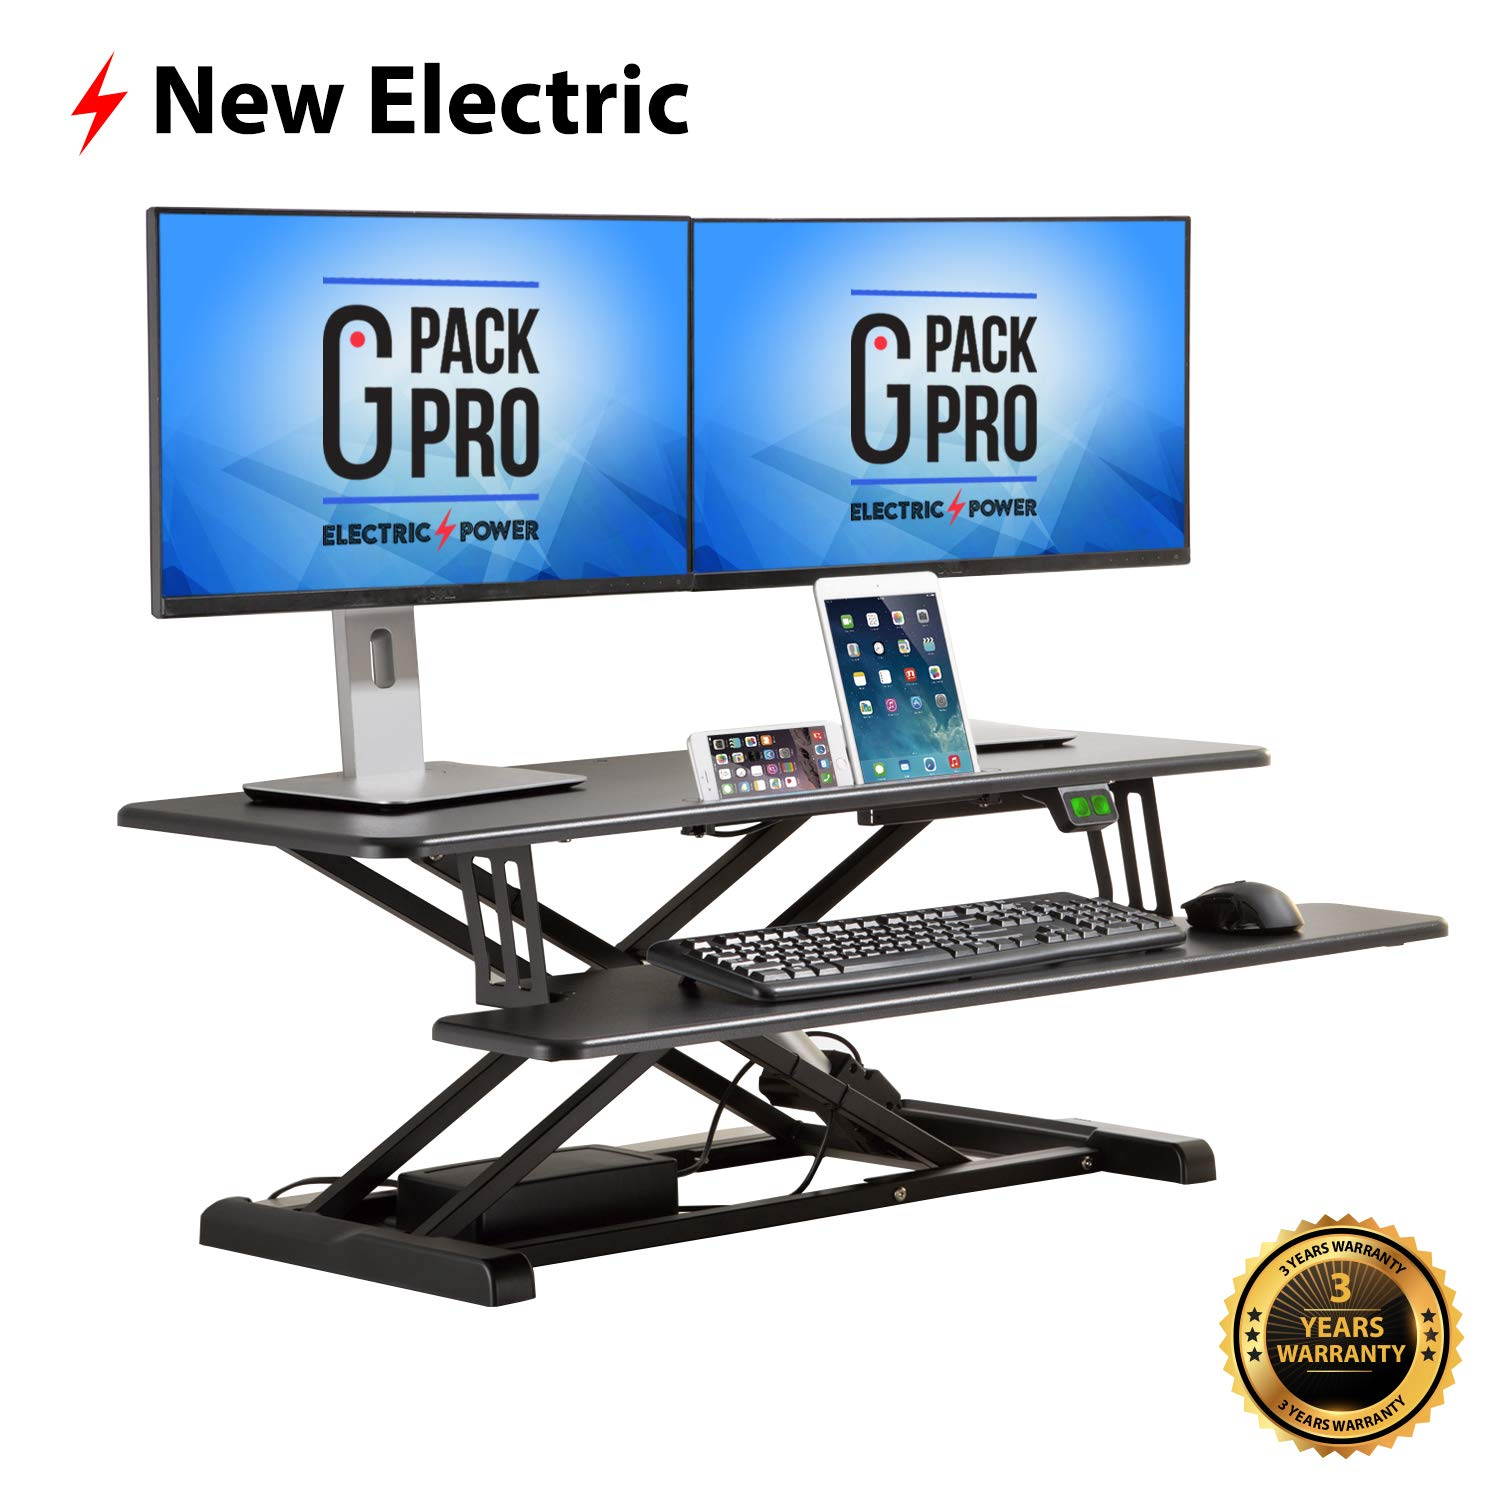 G Pack Pro - Standing Desk Converter | Electric Height Adjustable Stand Up Desk | Fits Dual Monitor | Removable Keyword Tray | Designed for Multipurpose Work | Black Color by G-PACK PRO